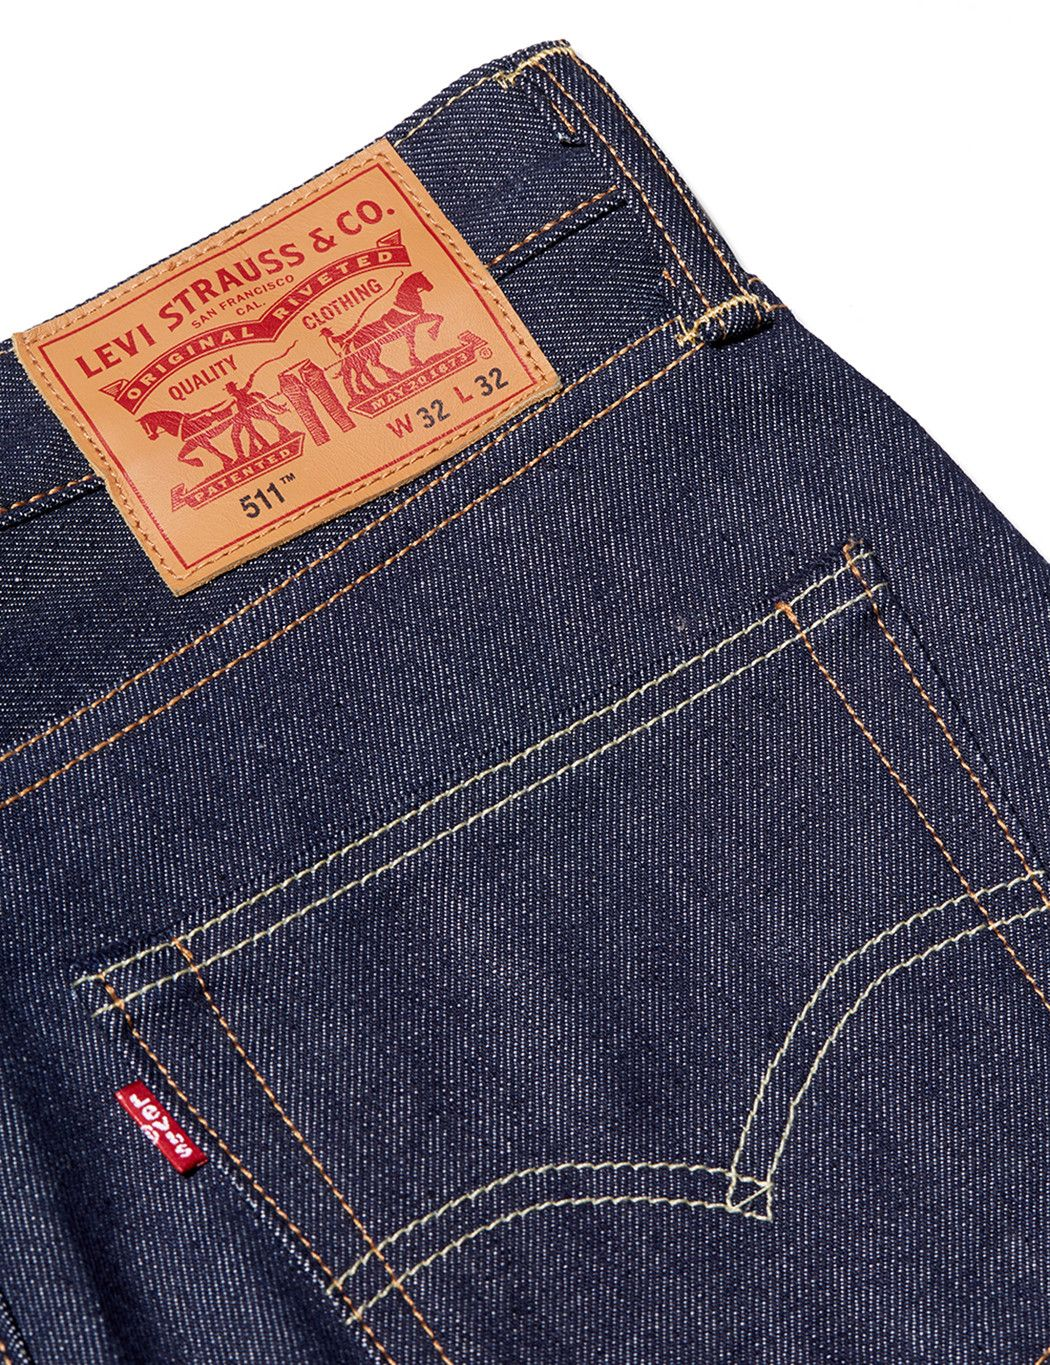 ab082524f41 Levi's 511 Slim Fit Selvedge Jeans - Rigid Urn | Jeans in 2019 ...